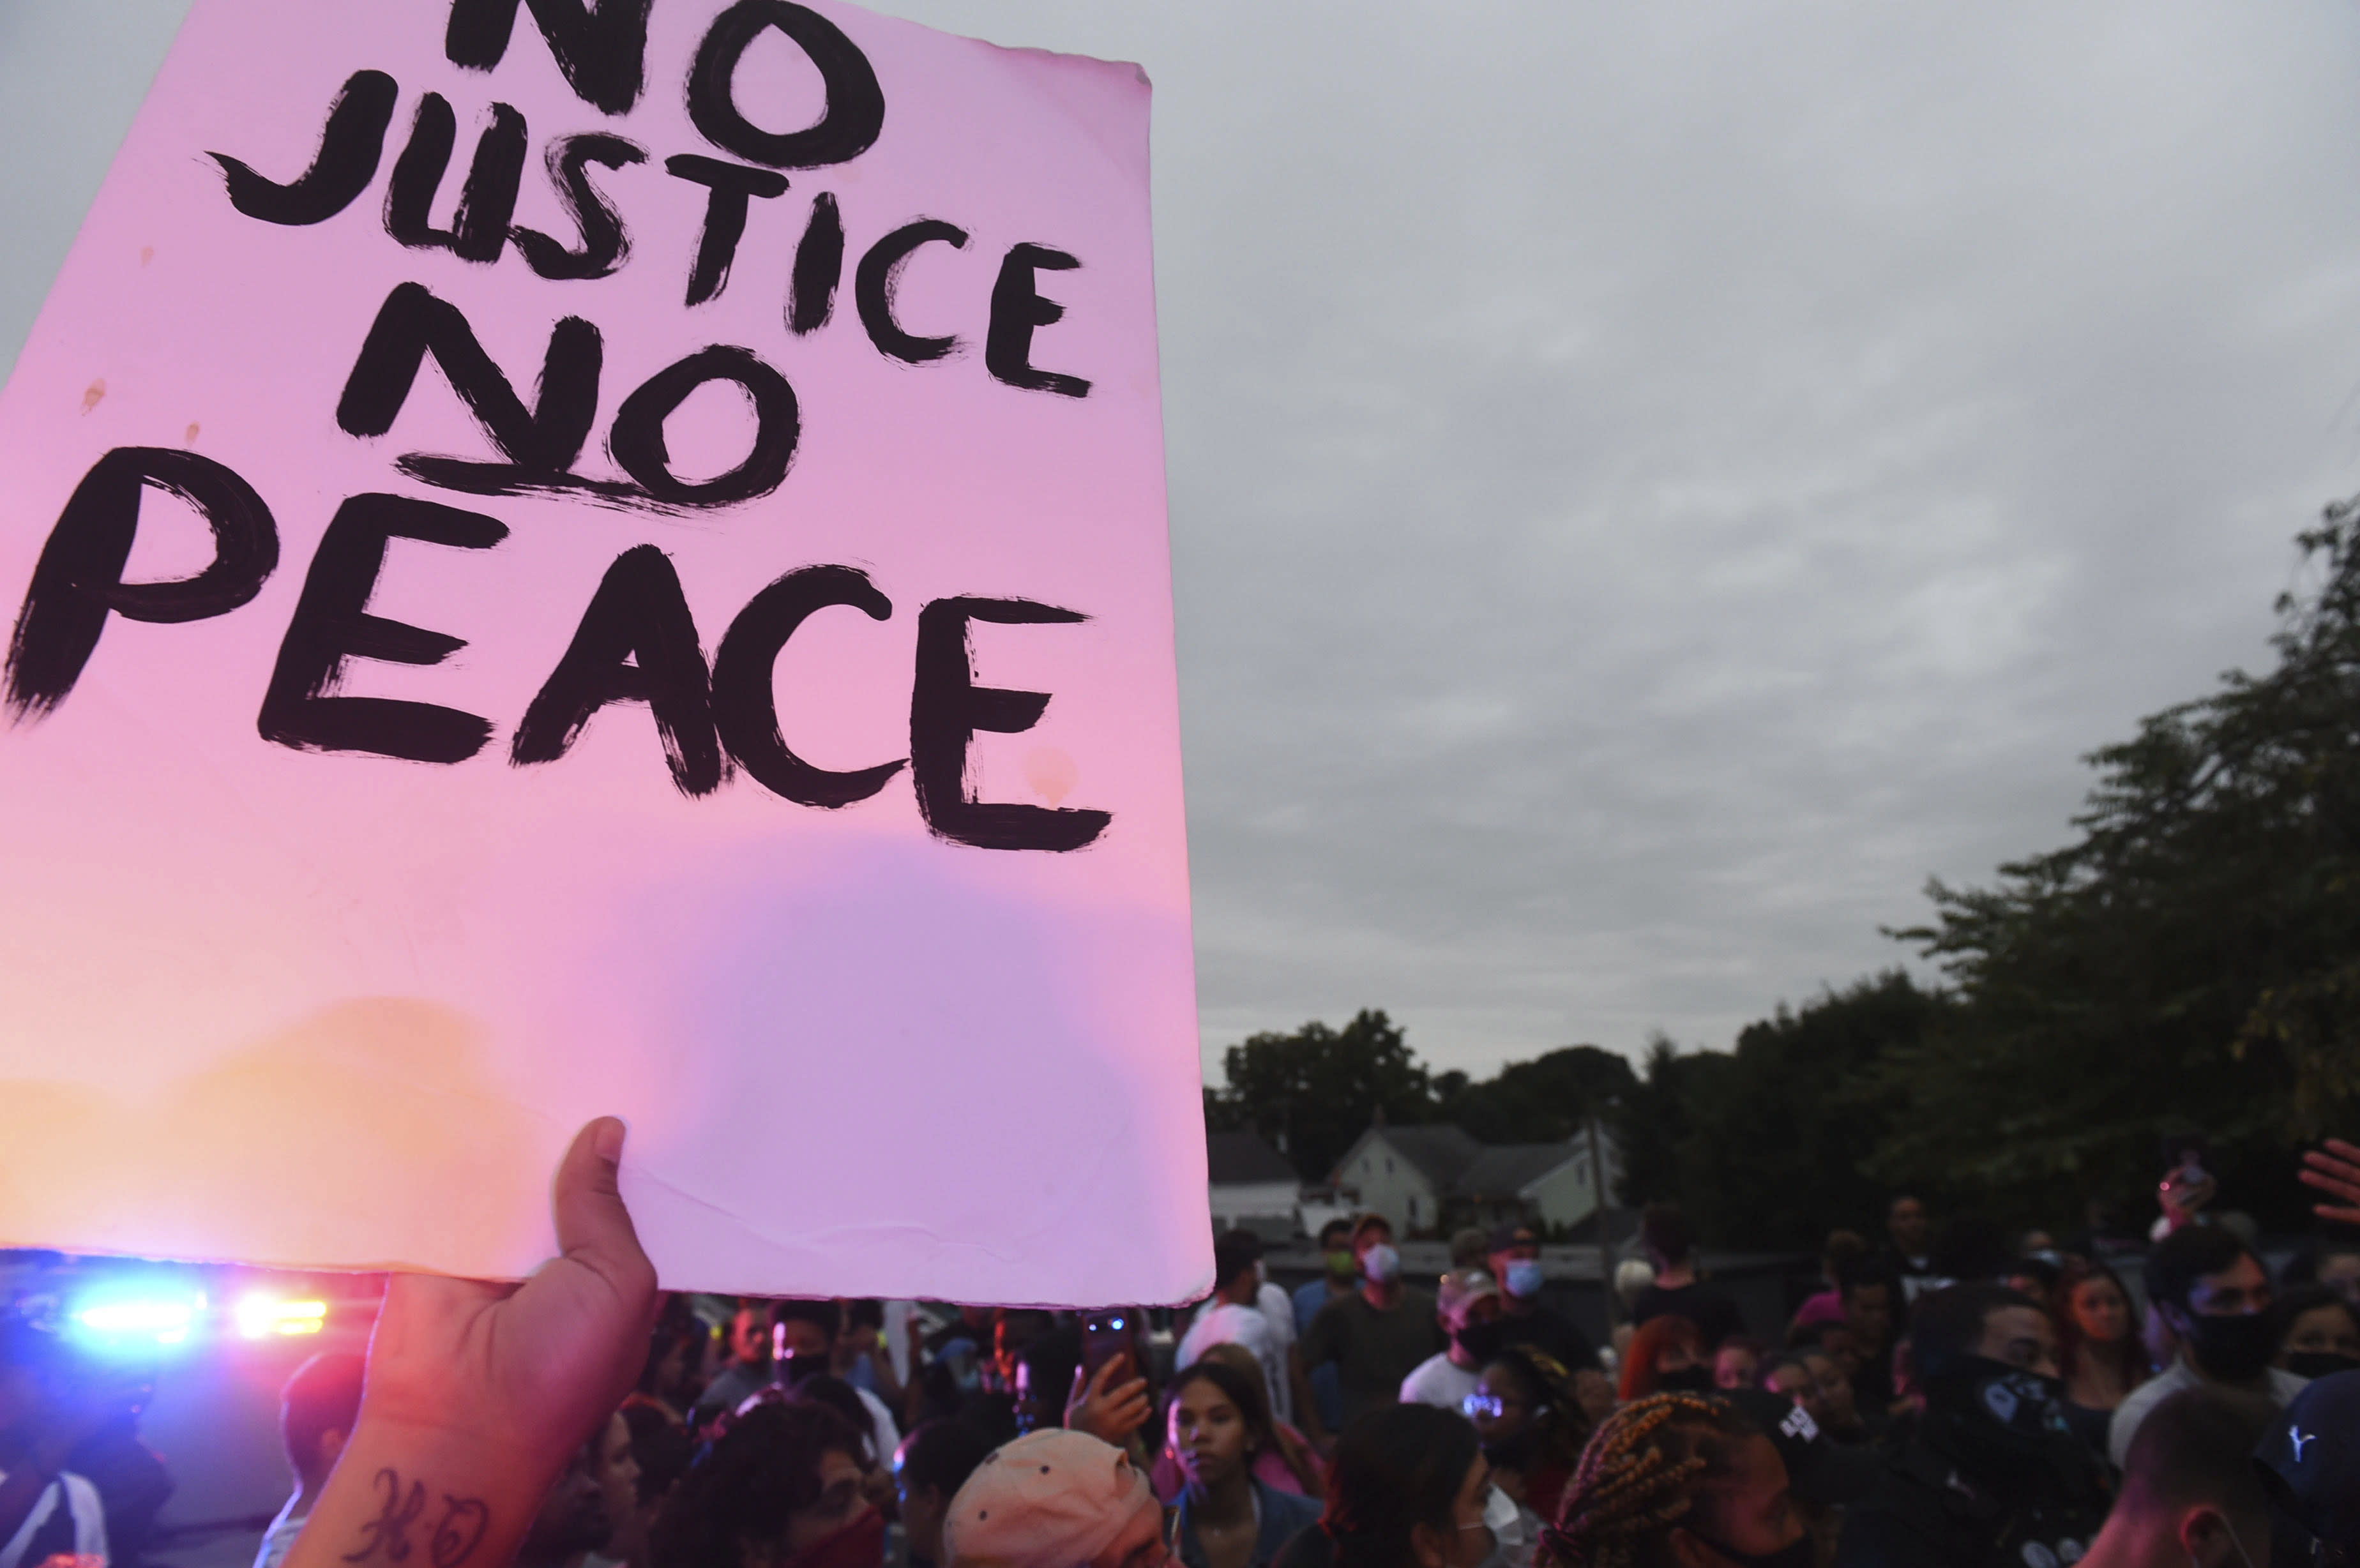 A sign at a protest at the scene of a police shooting on Laurel Street and Union Street in Lancaster city on Sunday, September 13, 2020. A man was shot by police earlier in the day after a reported domestic dispute, police said. A Lancaster city police officer fired at a 27-year-old man who was armed with a knife. The man, identified as Ricardo Munoz, was killed and pronounced dead at the scene. (Andy Blackburn/LNP/LancasterOnline via AP)